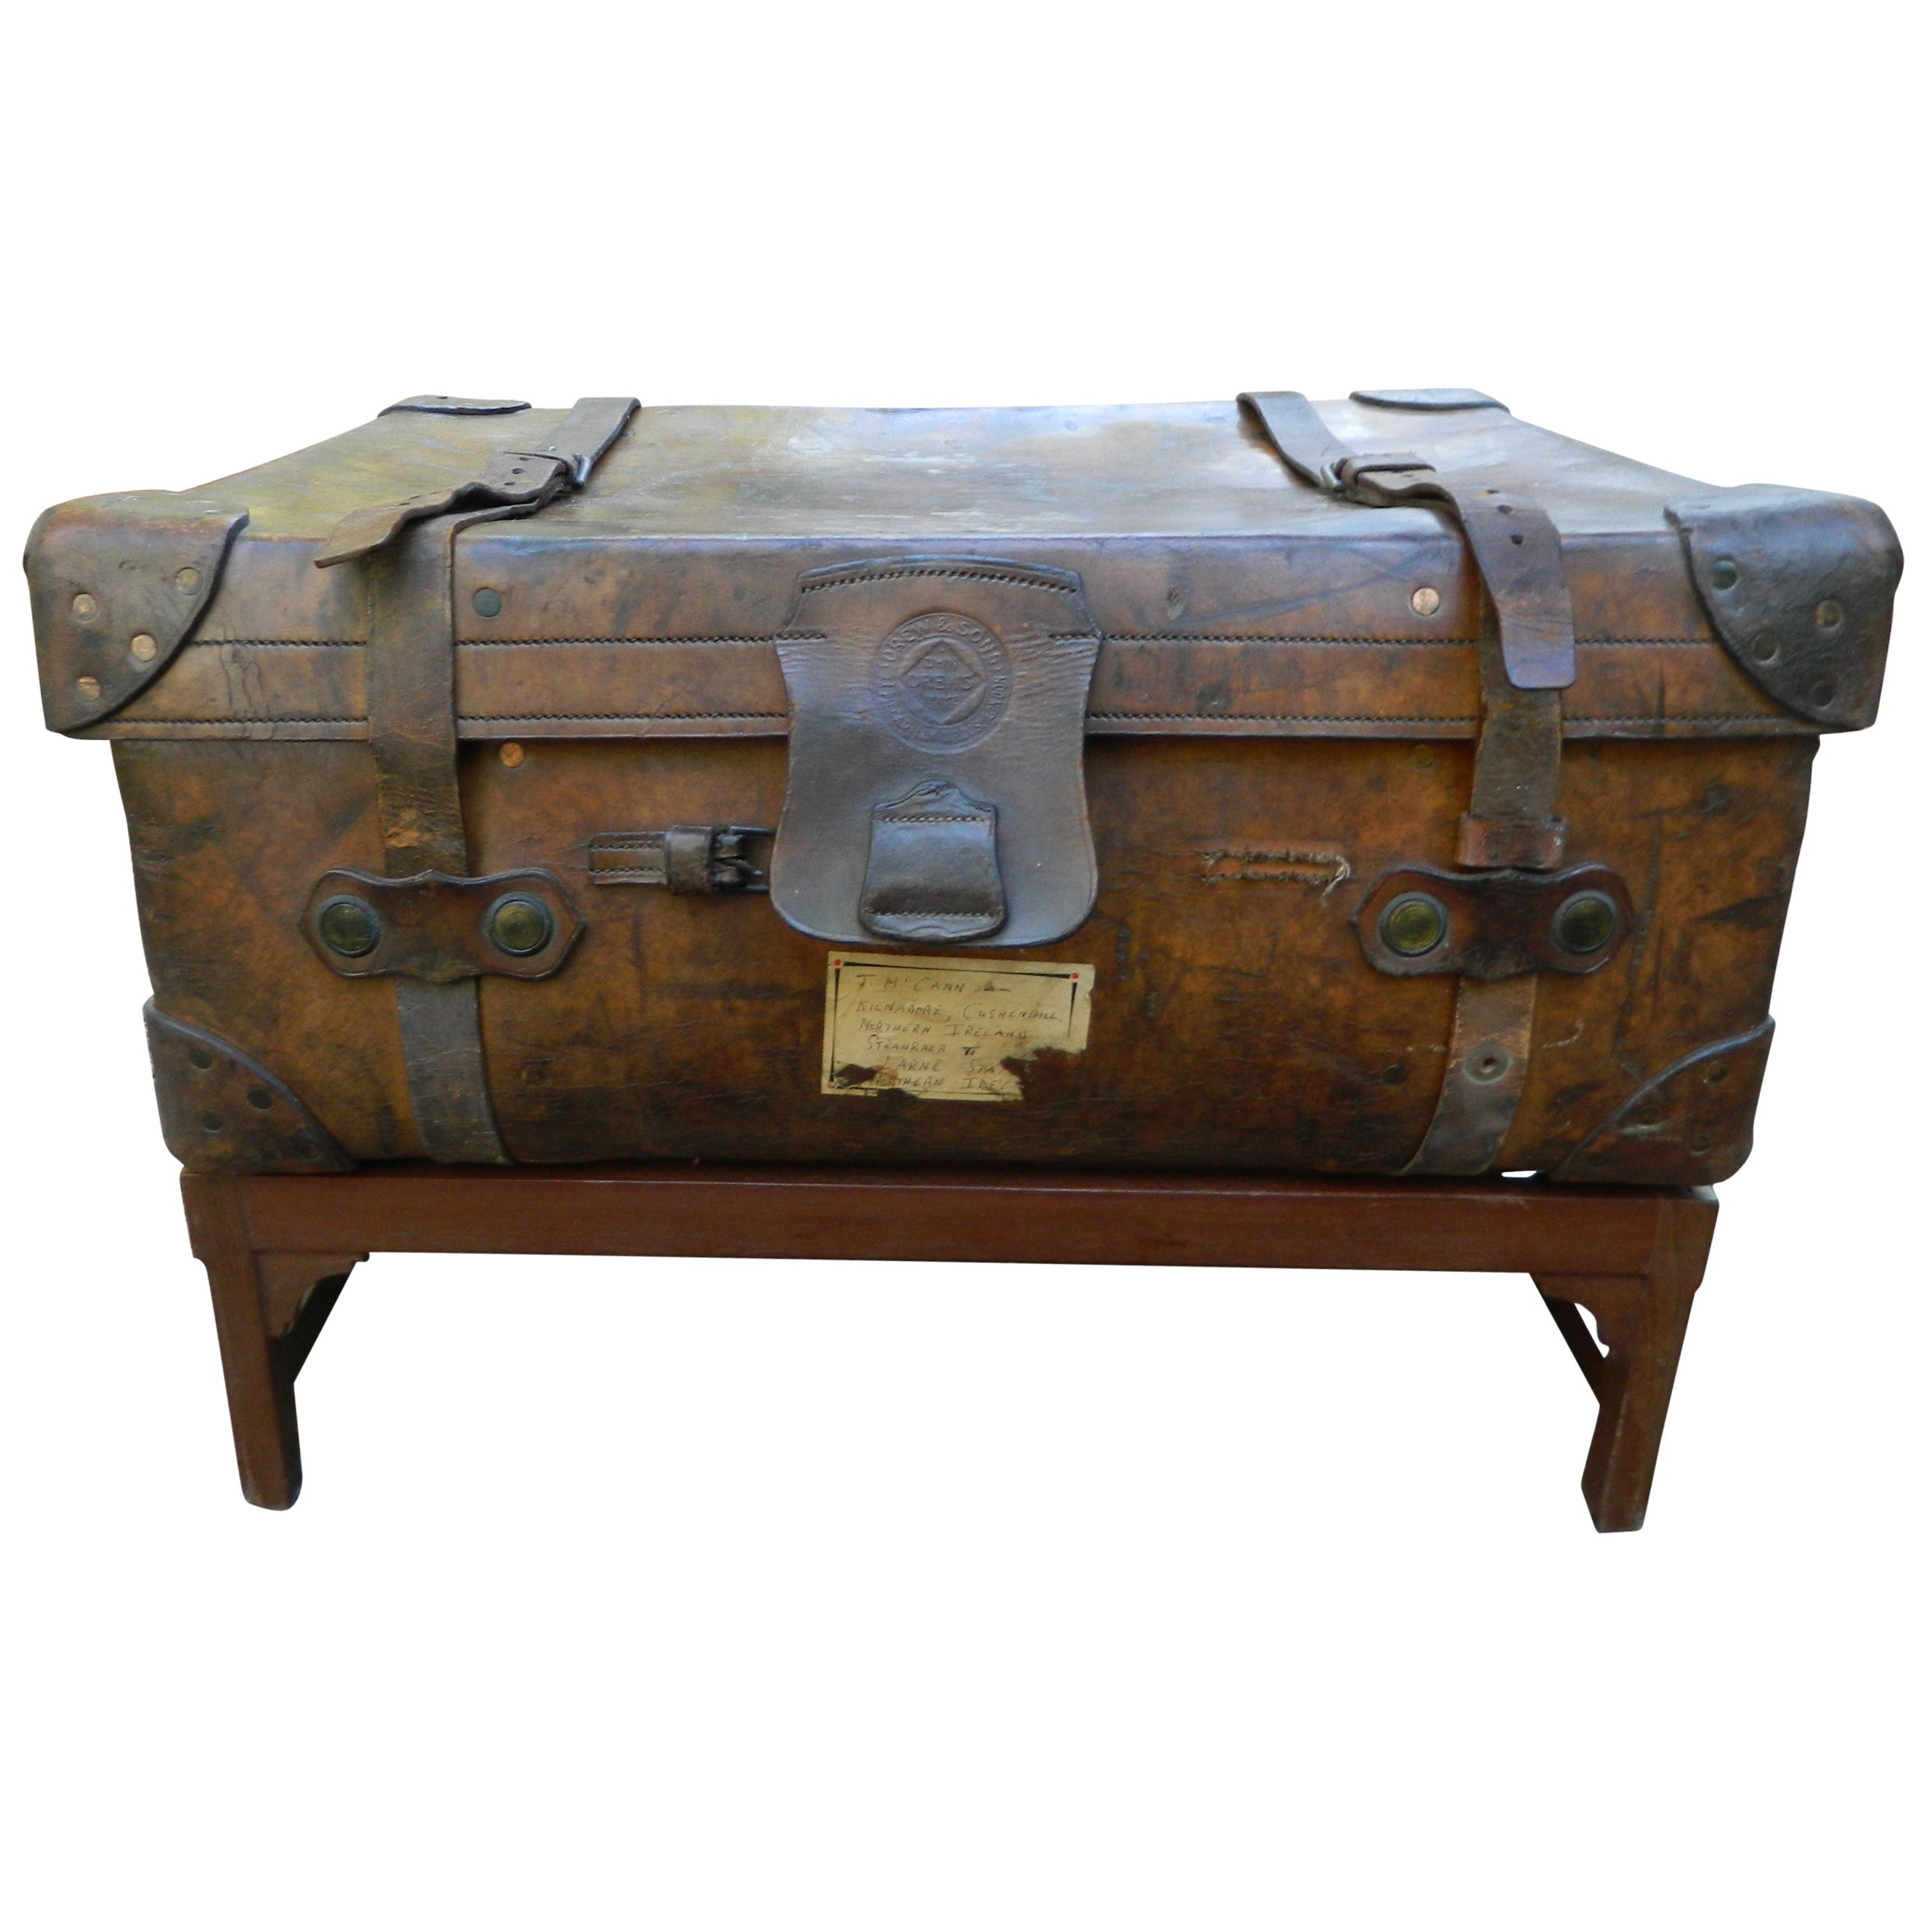 Superbe English Leather Suitcase Adapted As A Coffee Table On Stand, 19th Century  For Sale At 1stdibs